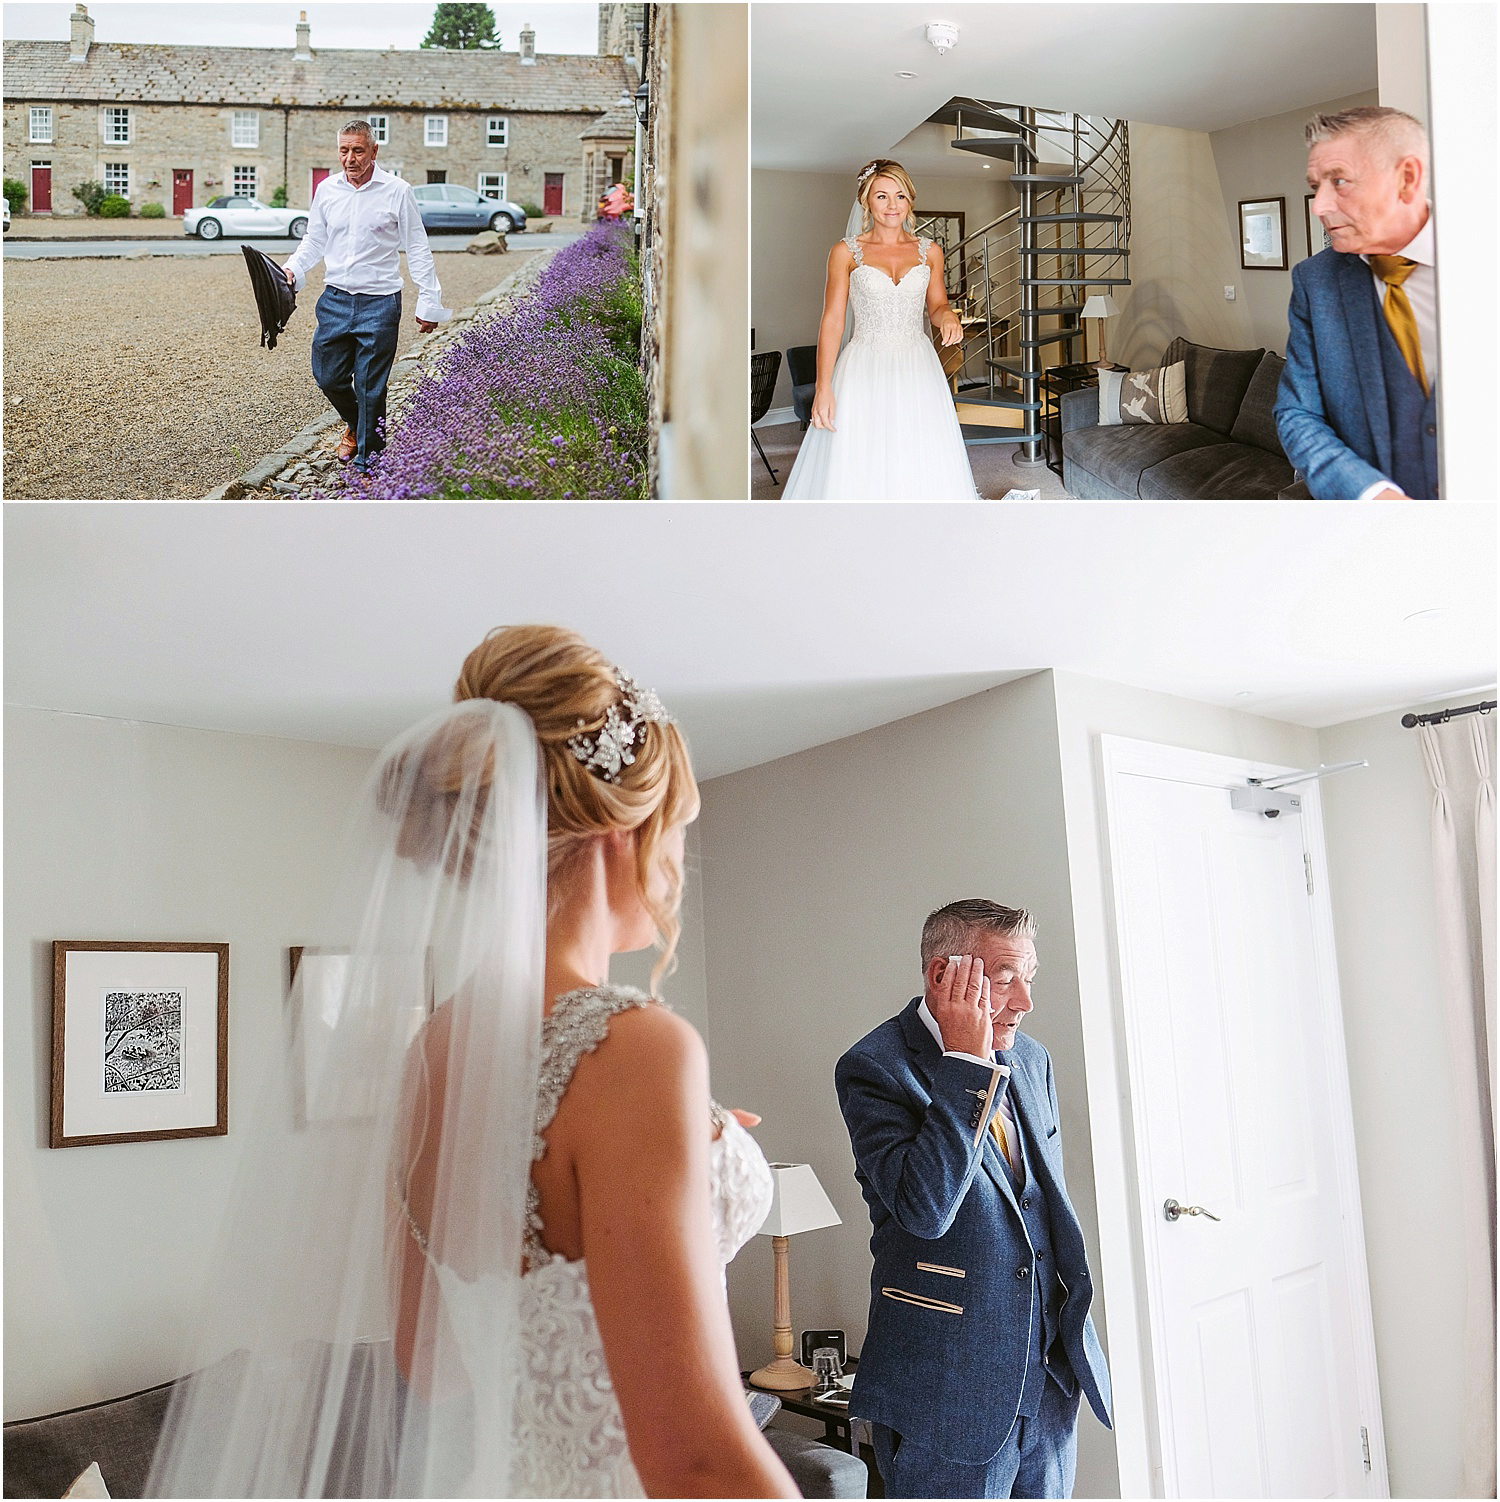 Wedding at Healey Barn - wedding photography by www.2tonephotography.co.uk 014.jpg